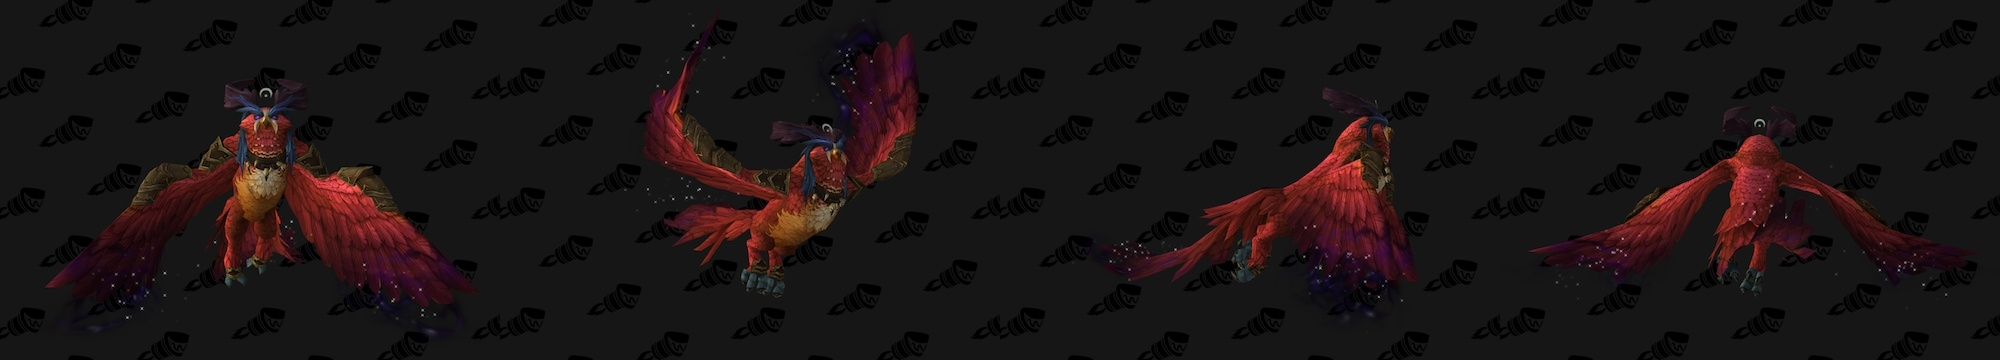 Druid Class Mount And Quest Archdruids Lunarwing Form Wowhead News